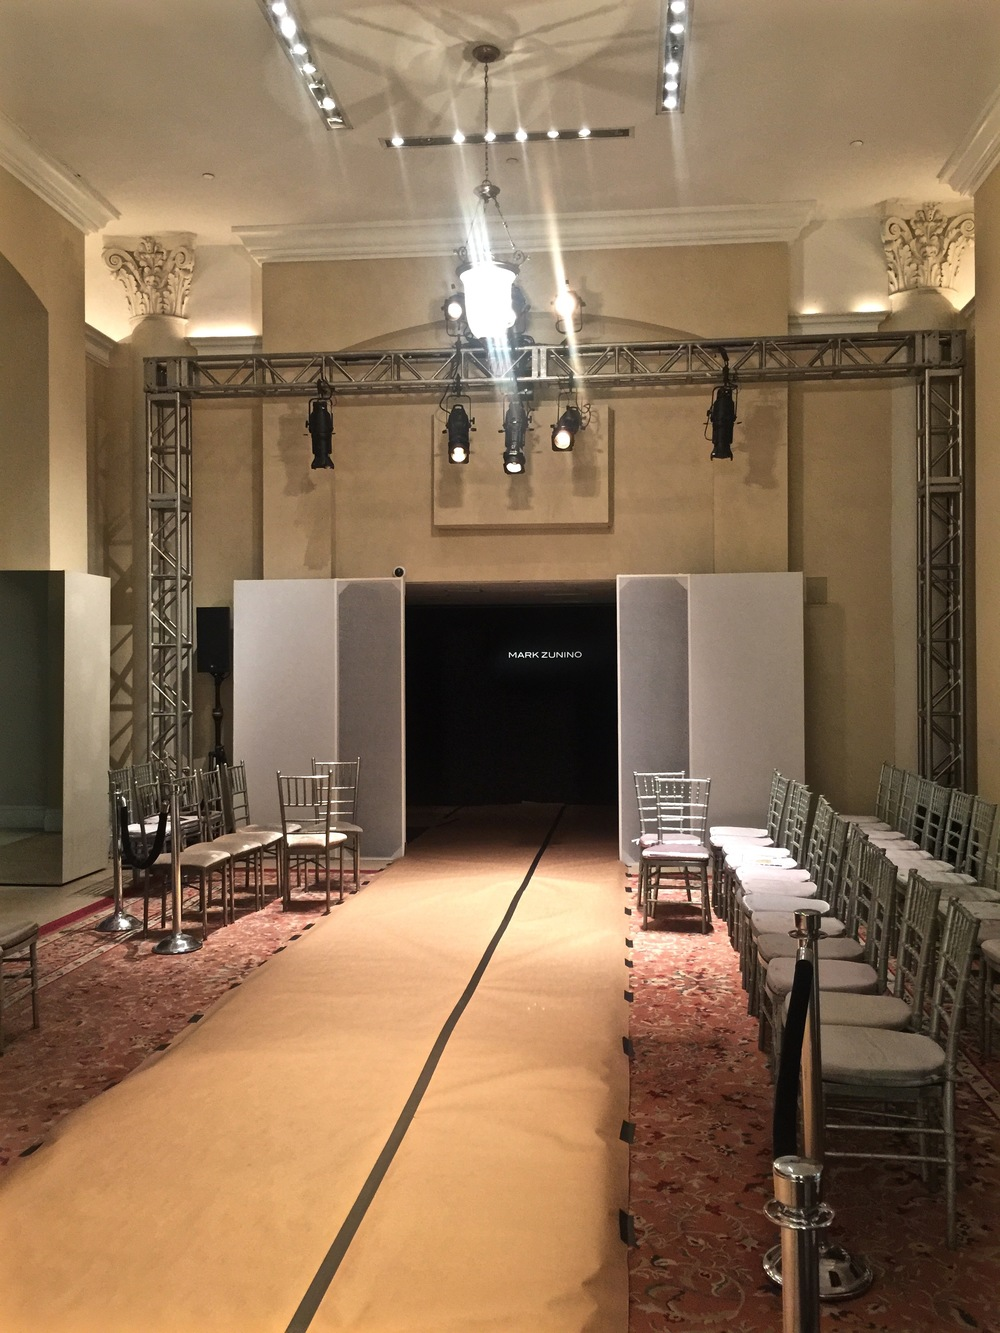 While at a fitting for one of my brides at Kleinfeld New York I managed to check in on the set up of the Mark Zunino fashion show.